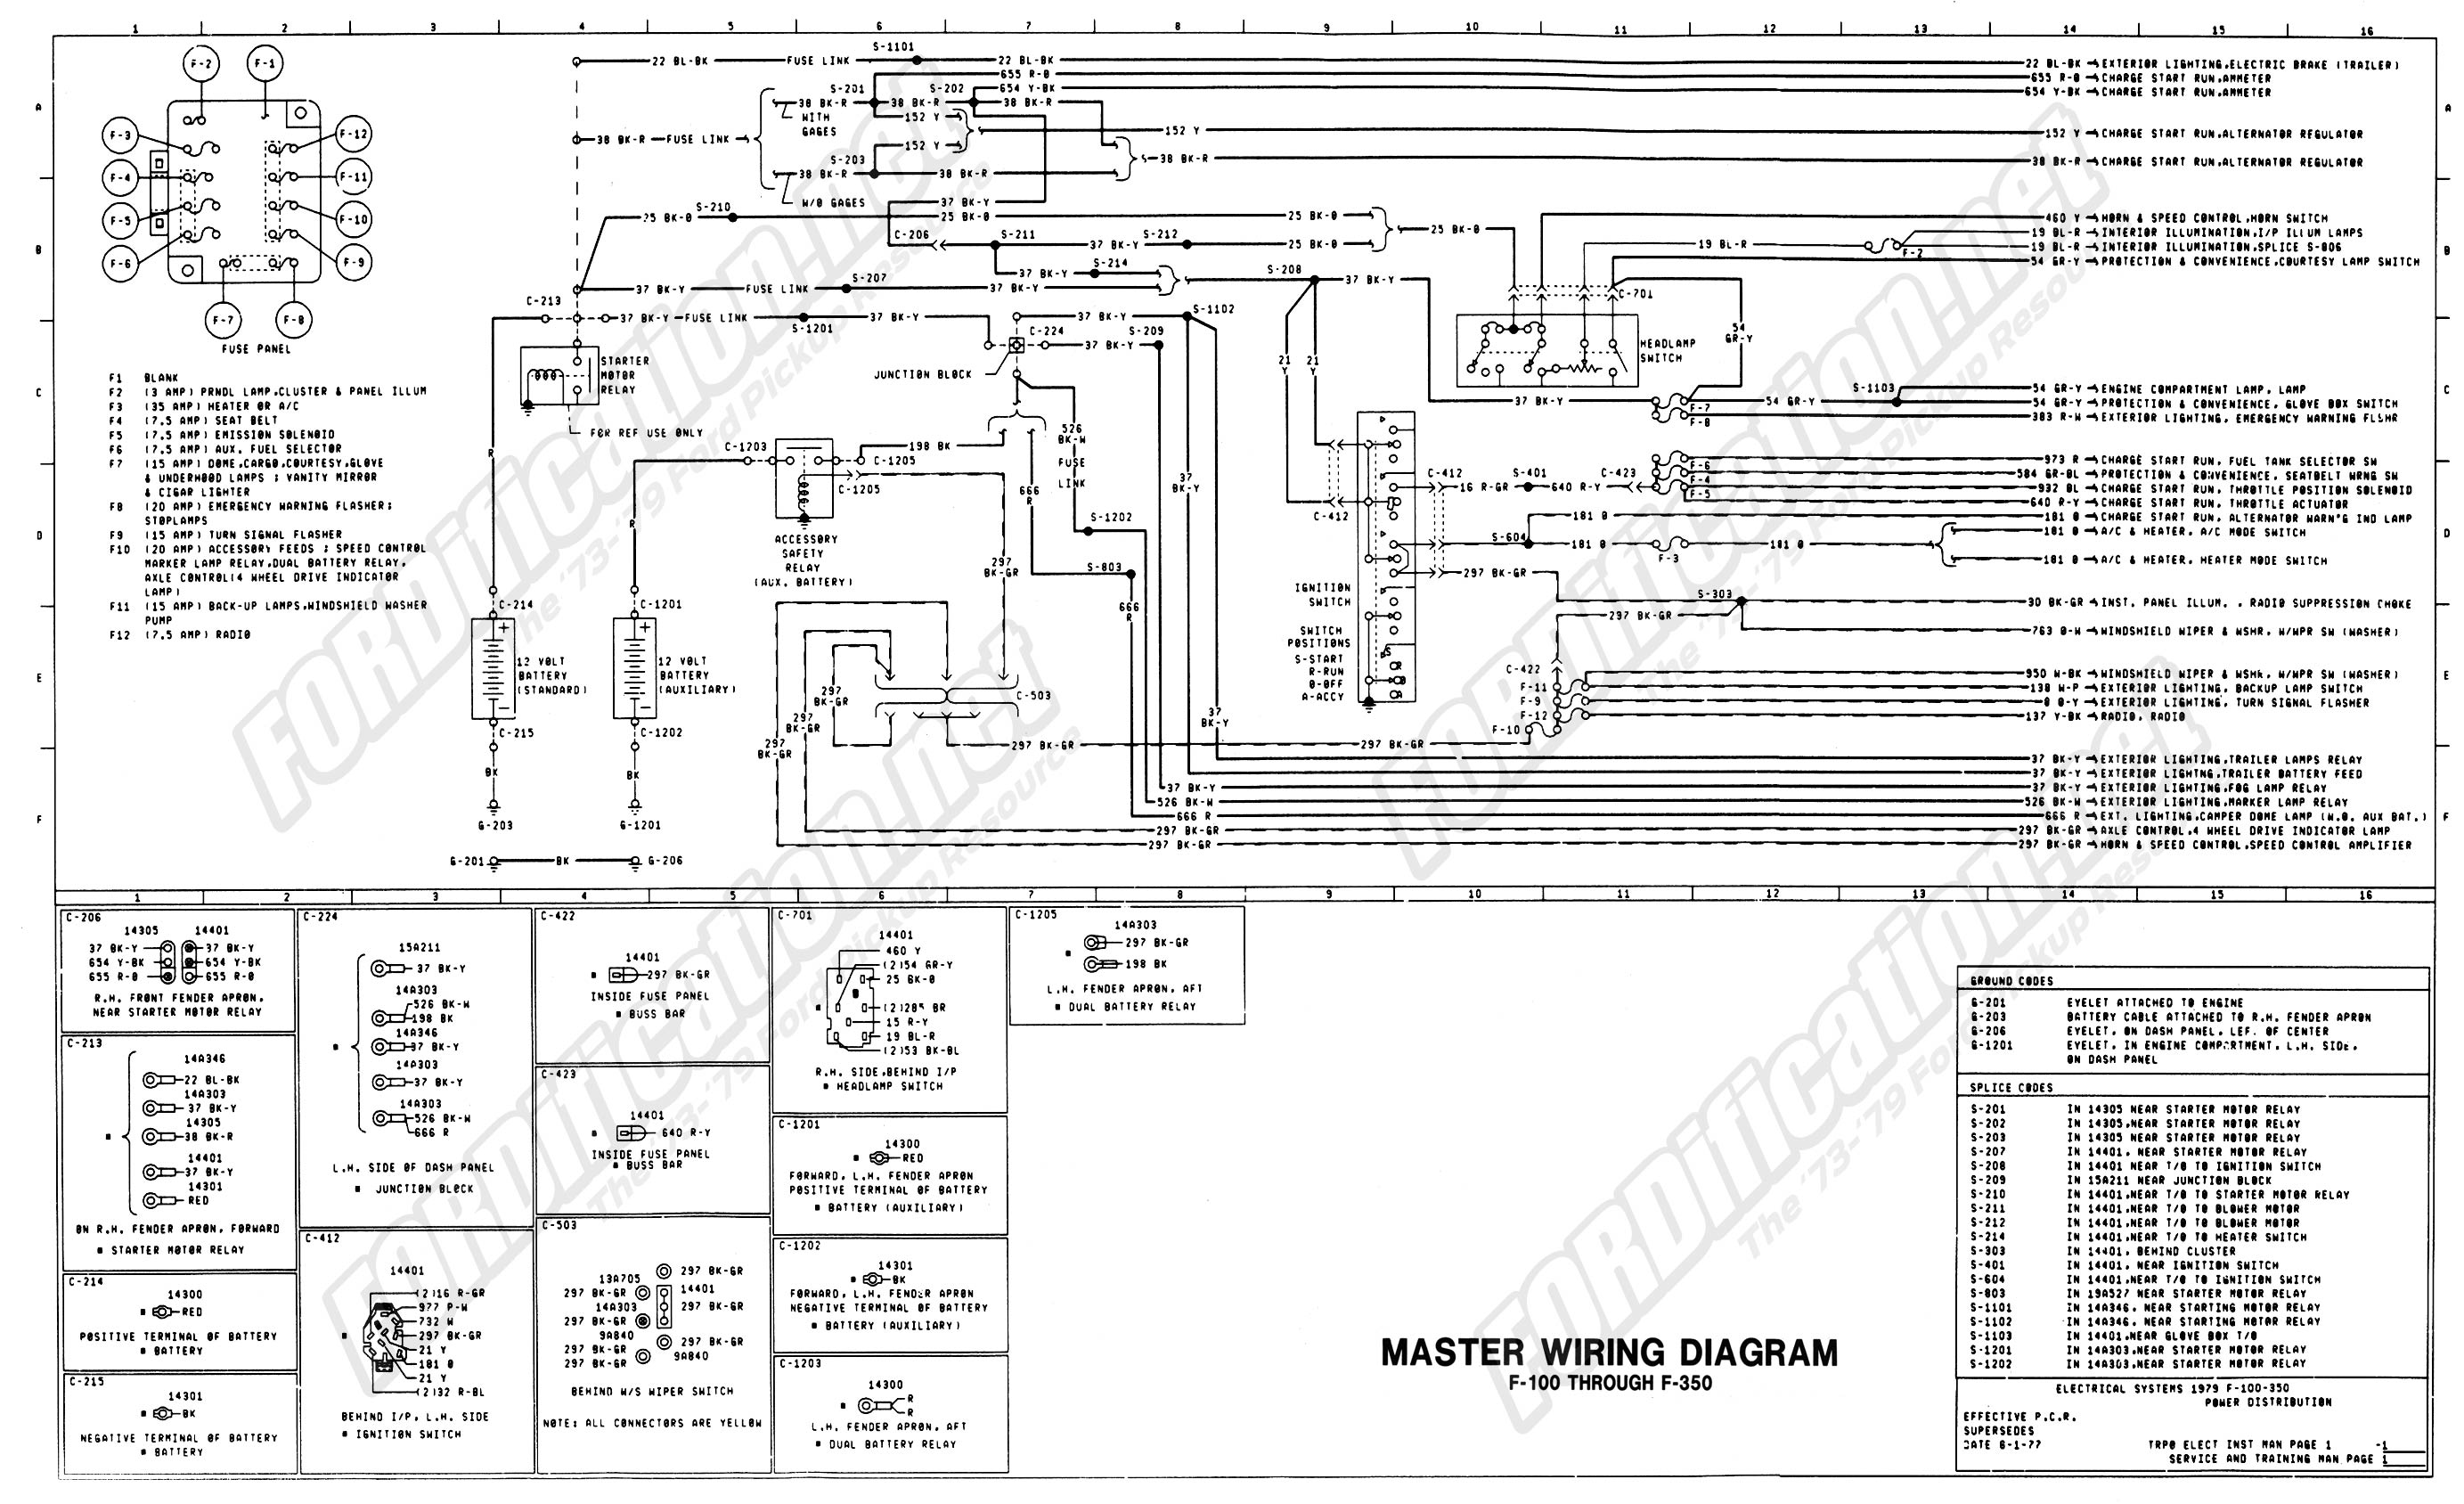 Panel From Chevy Tail Light Wiring Diagram Lights Fuse To 1975 1973 1979 Ford Truck Diagrams Schematics